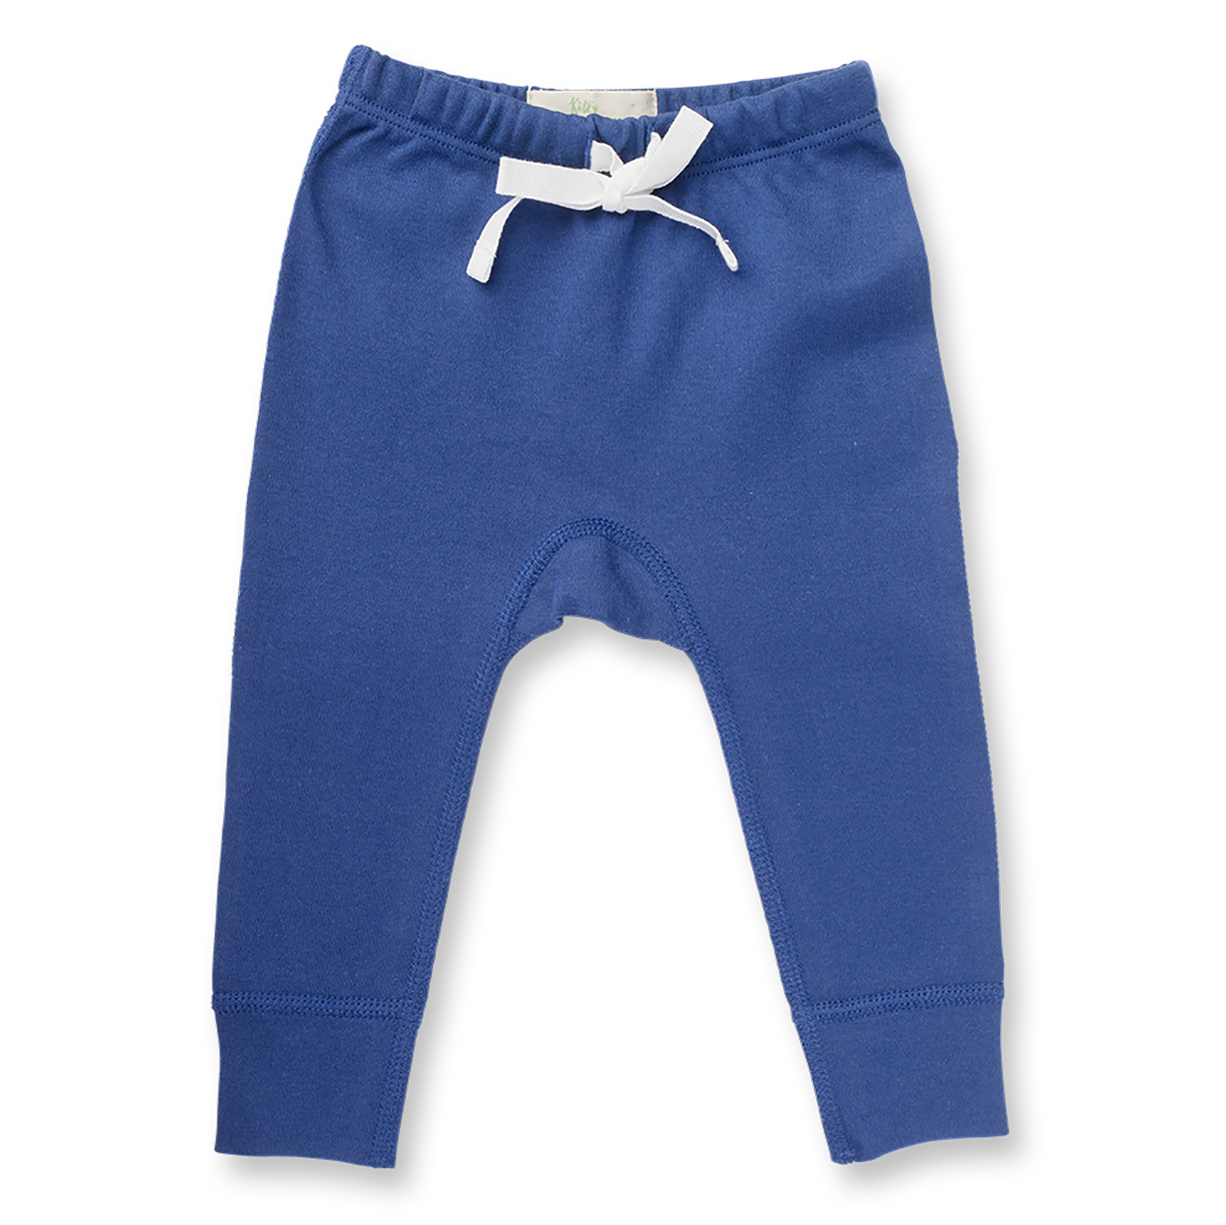 Jet Stream Blue Pants (WITHOUT HEART) - Sapling Organic Baby Clothes